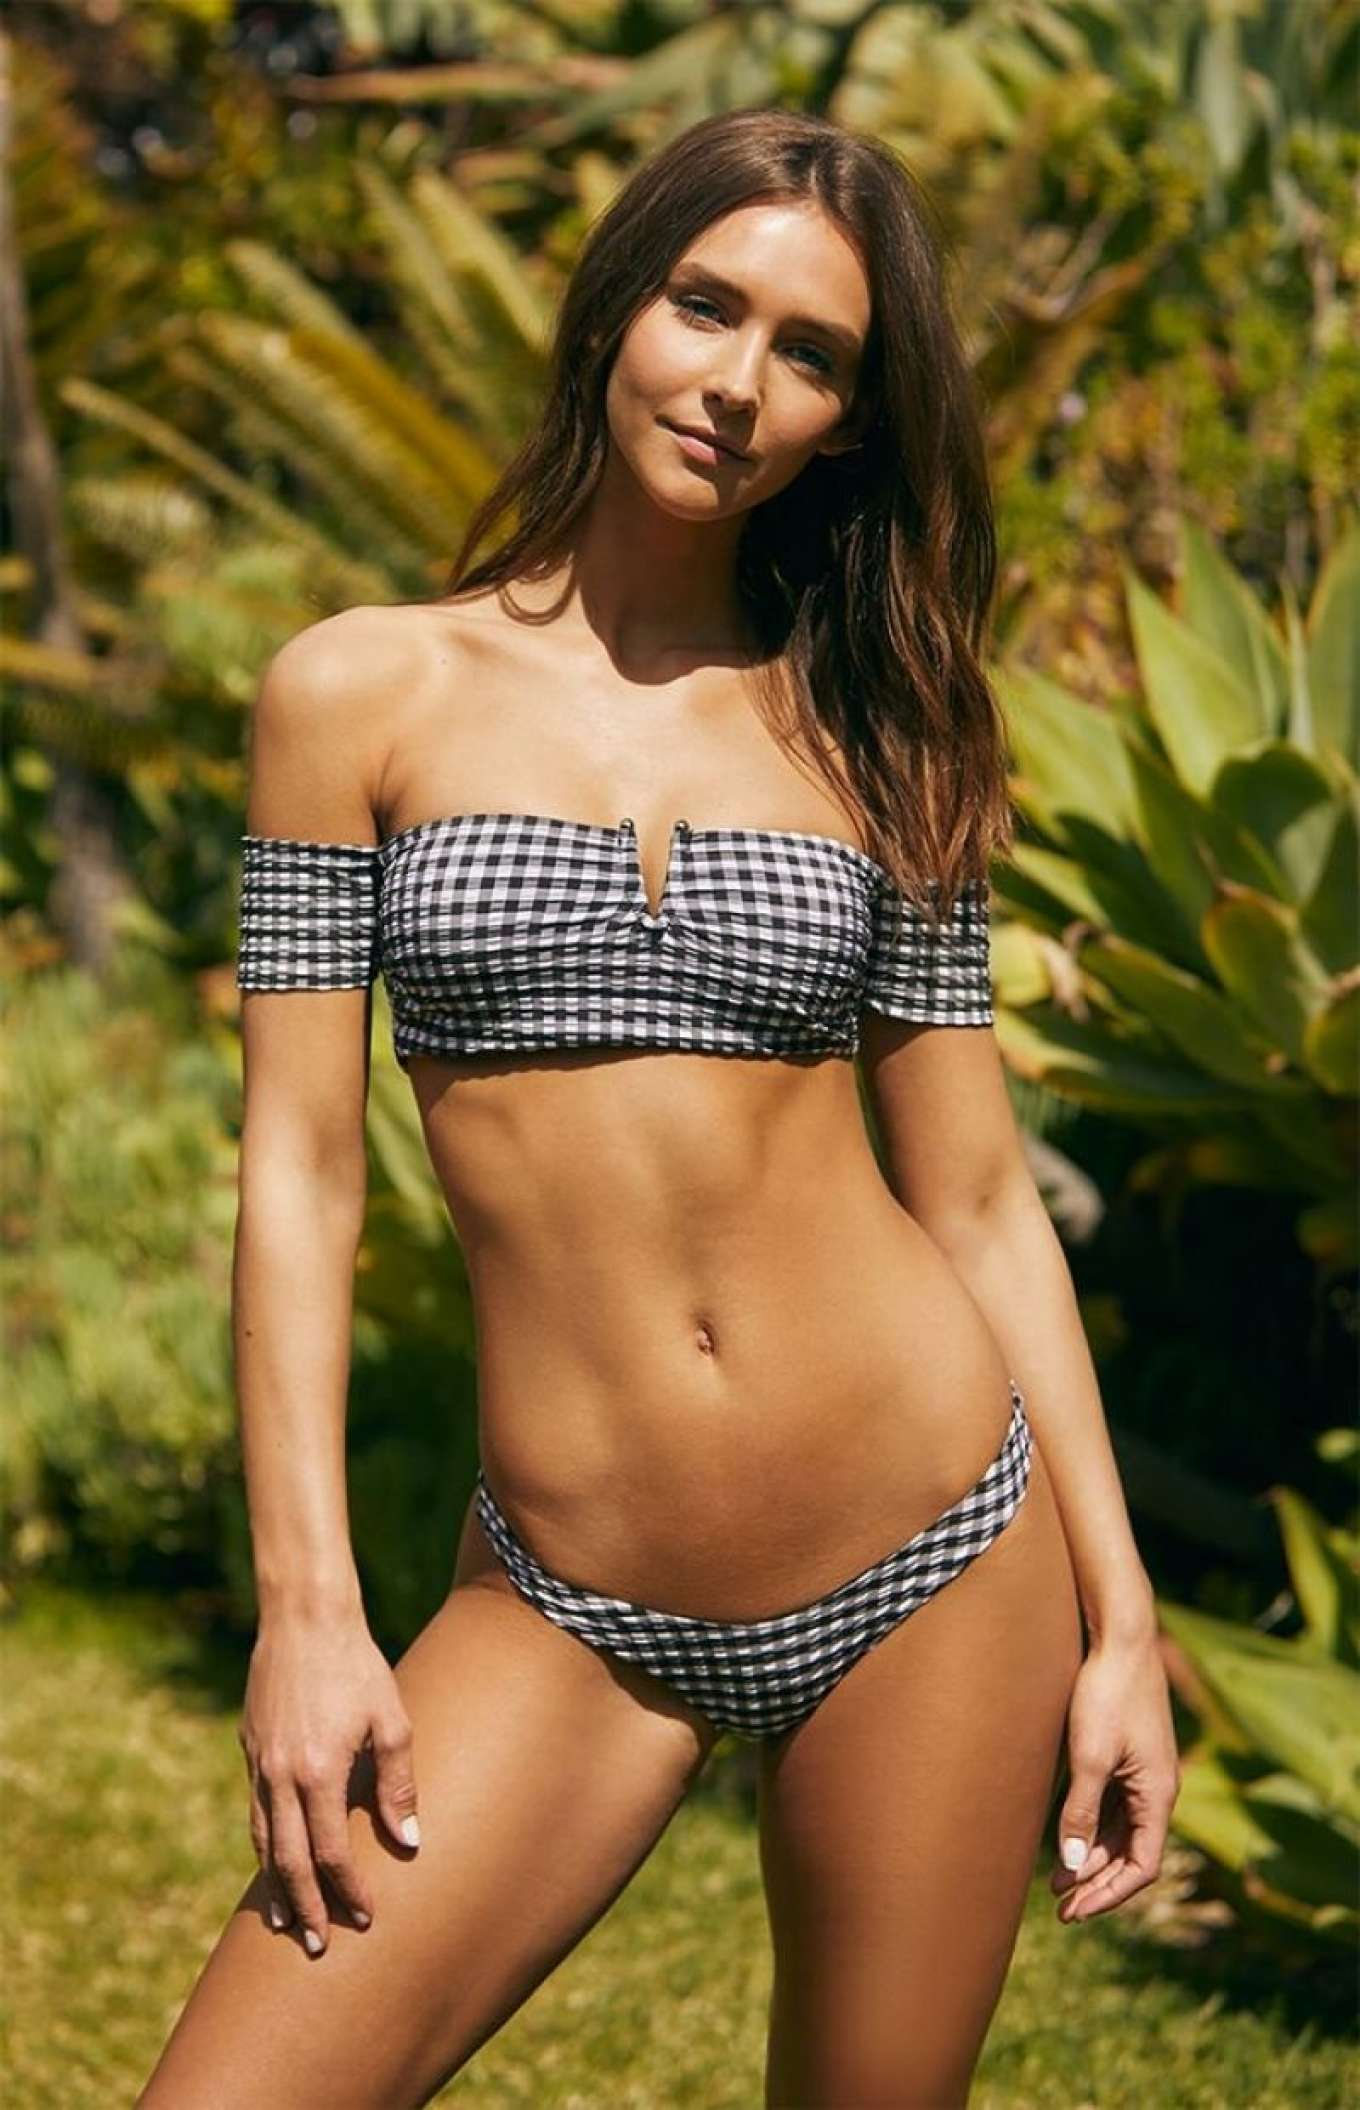 Rachel Cook 2019 : Rachel Cook – Photoshoot for Pacsun Swimwear 2019 collection-10